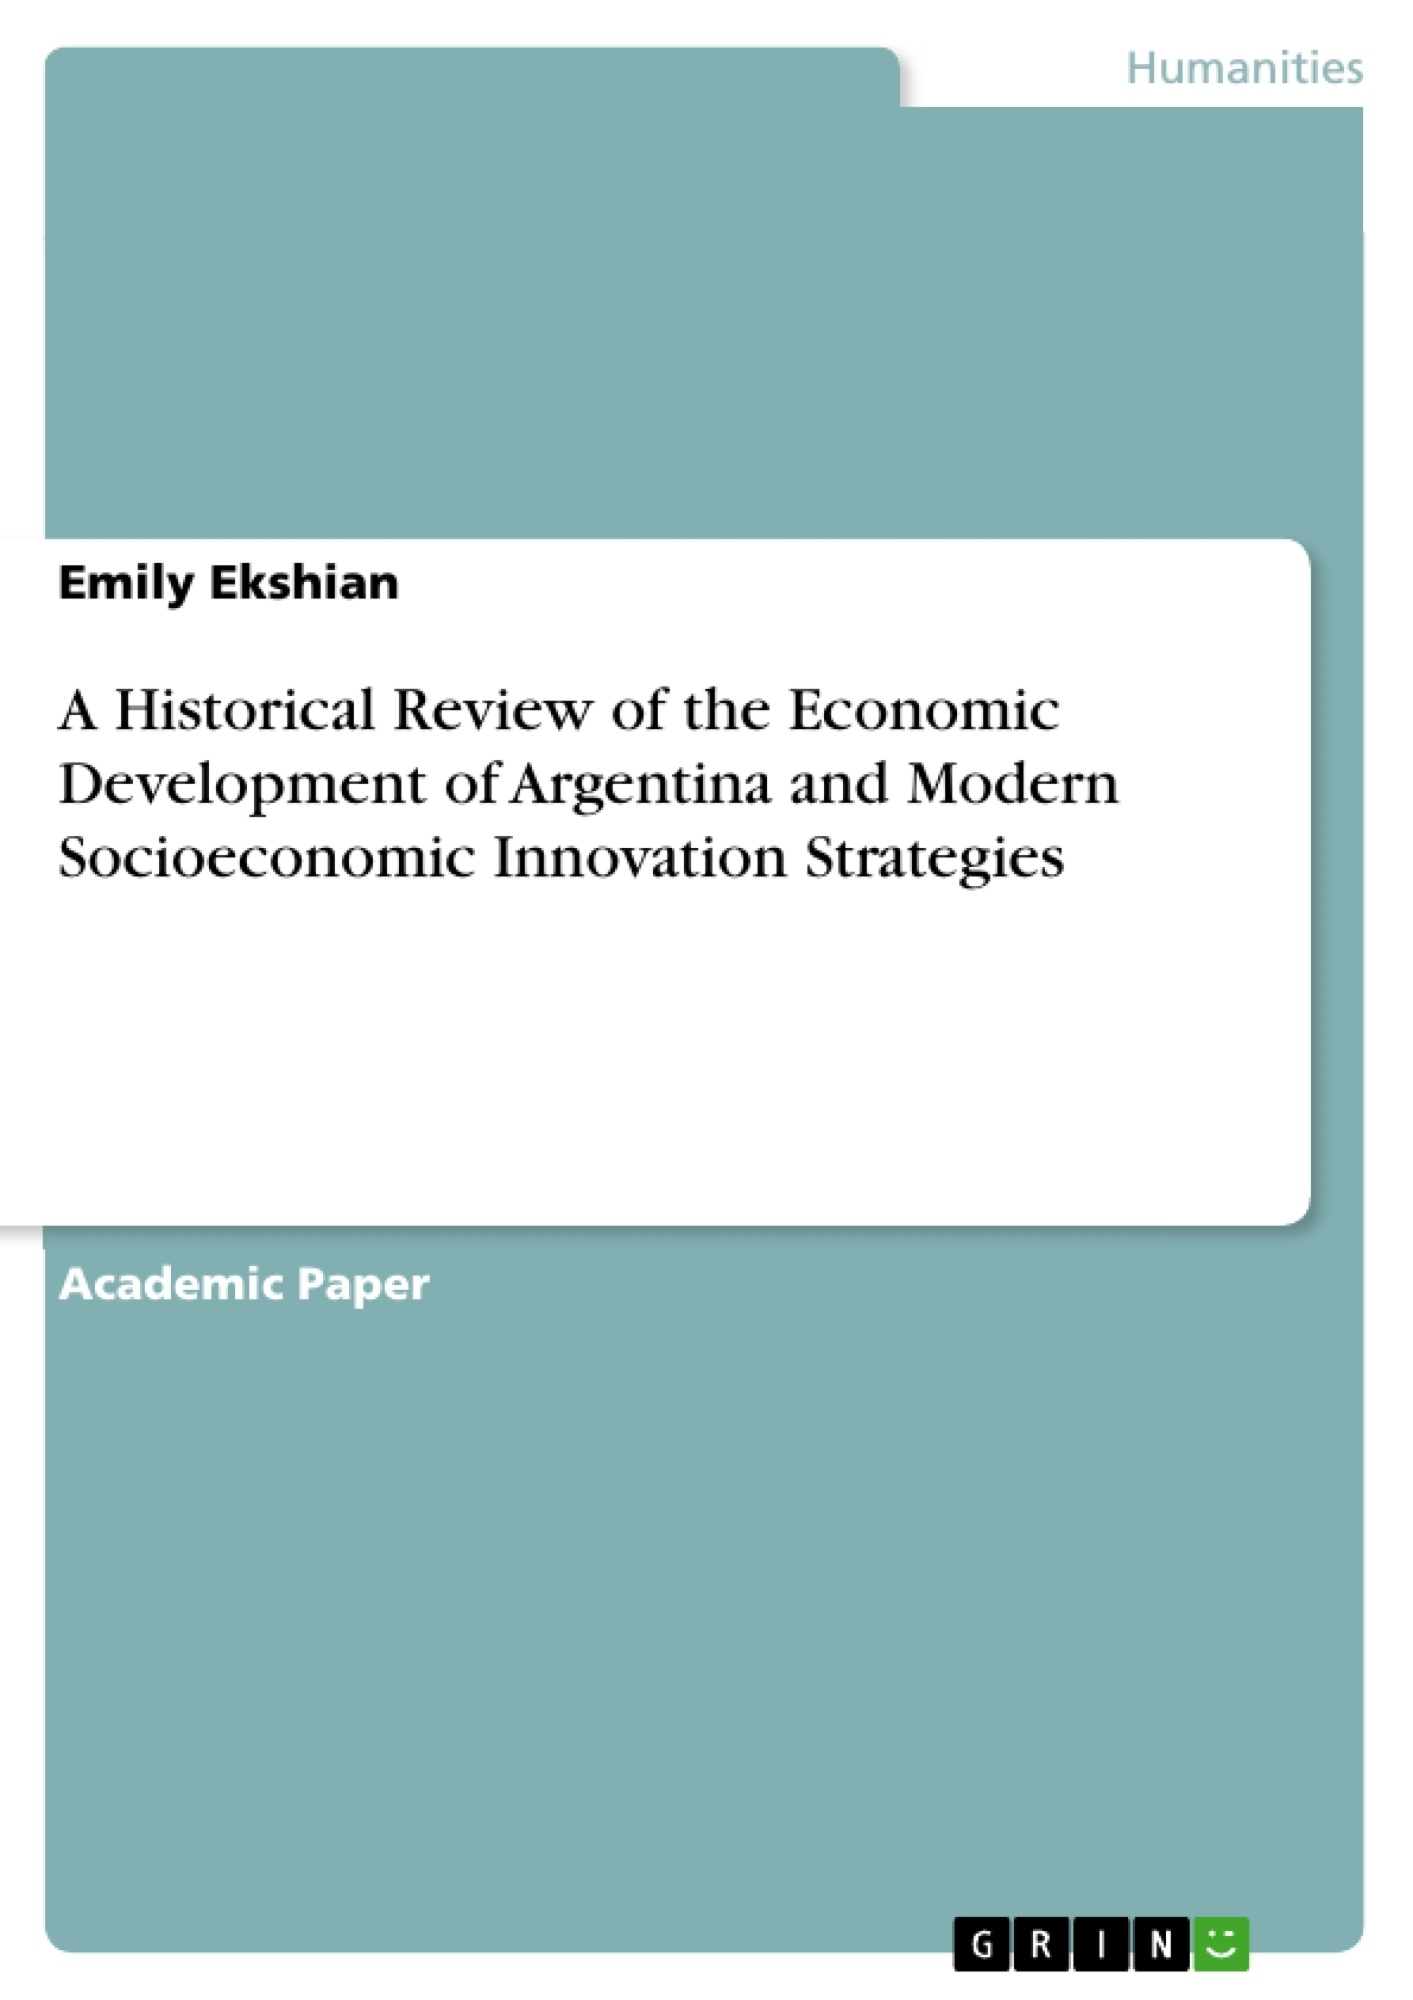 Title: A Historical Review of the Economic Development of Argentina and Modern Socioeconomic Innovation Strategies